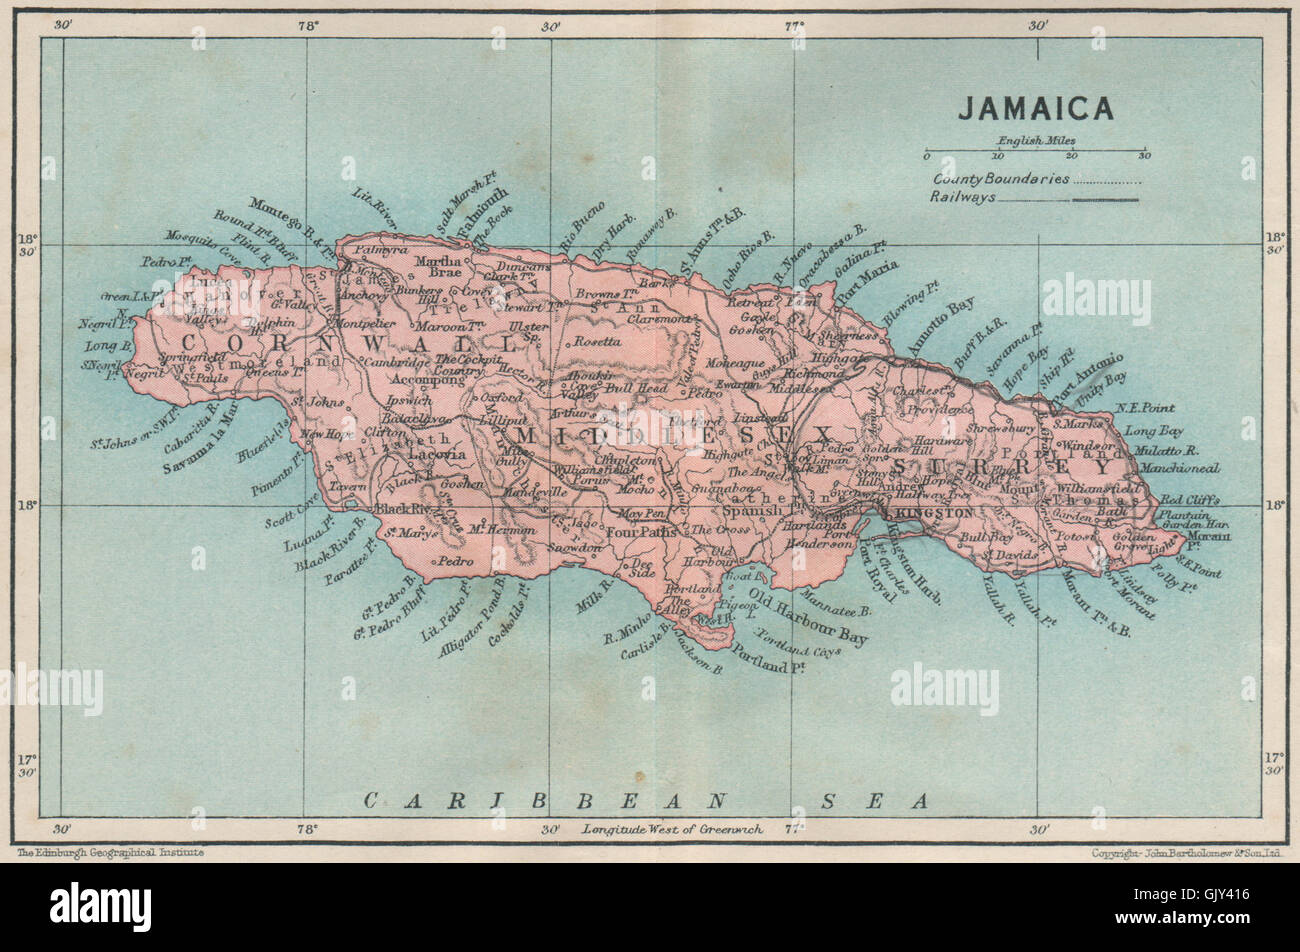 JAMAICA. Vintage map. West Indies. Caribbean, 1927 Stock Photo ...